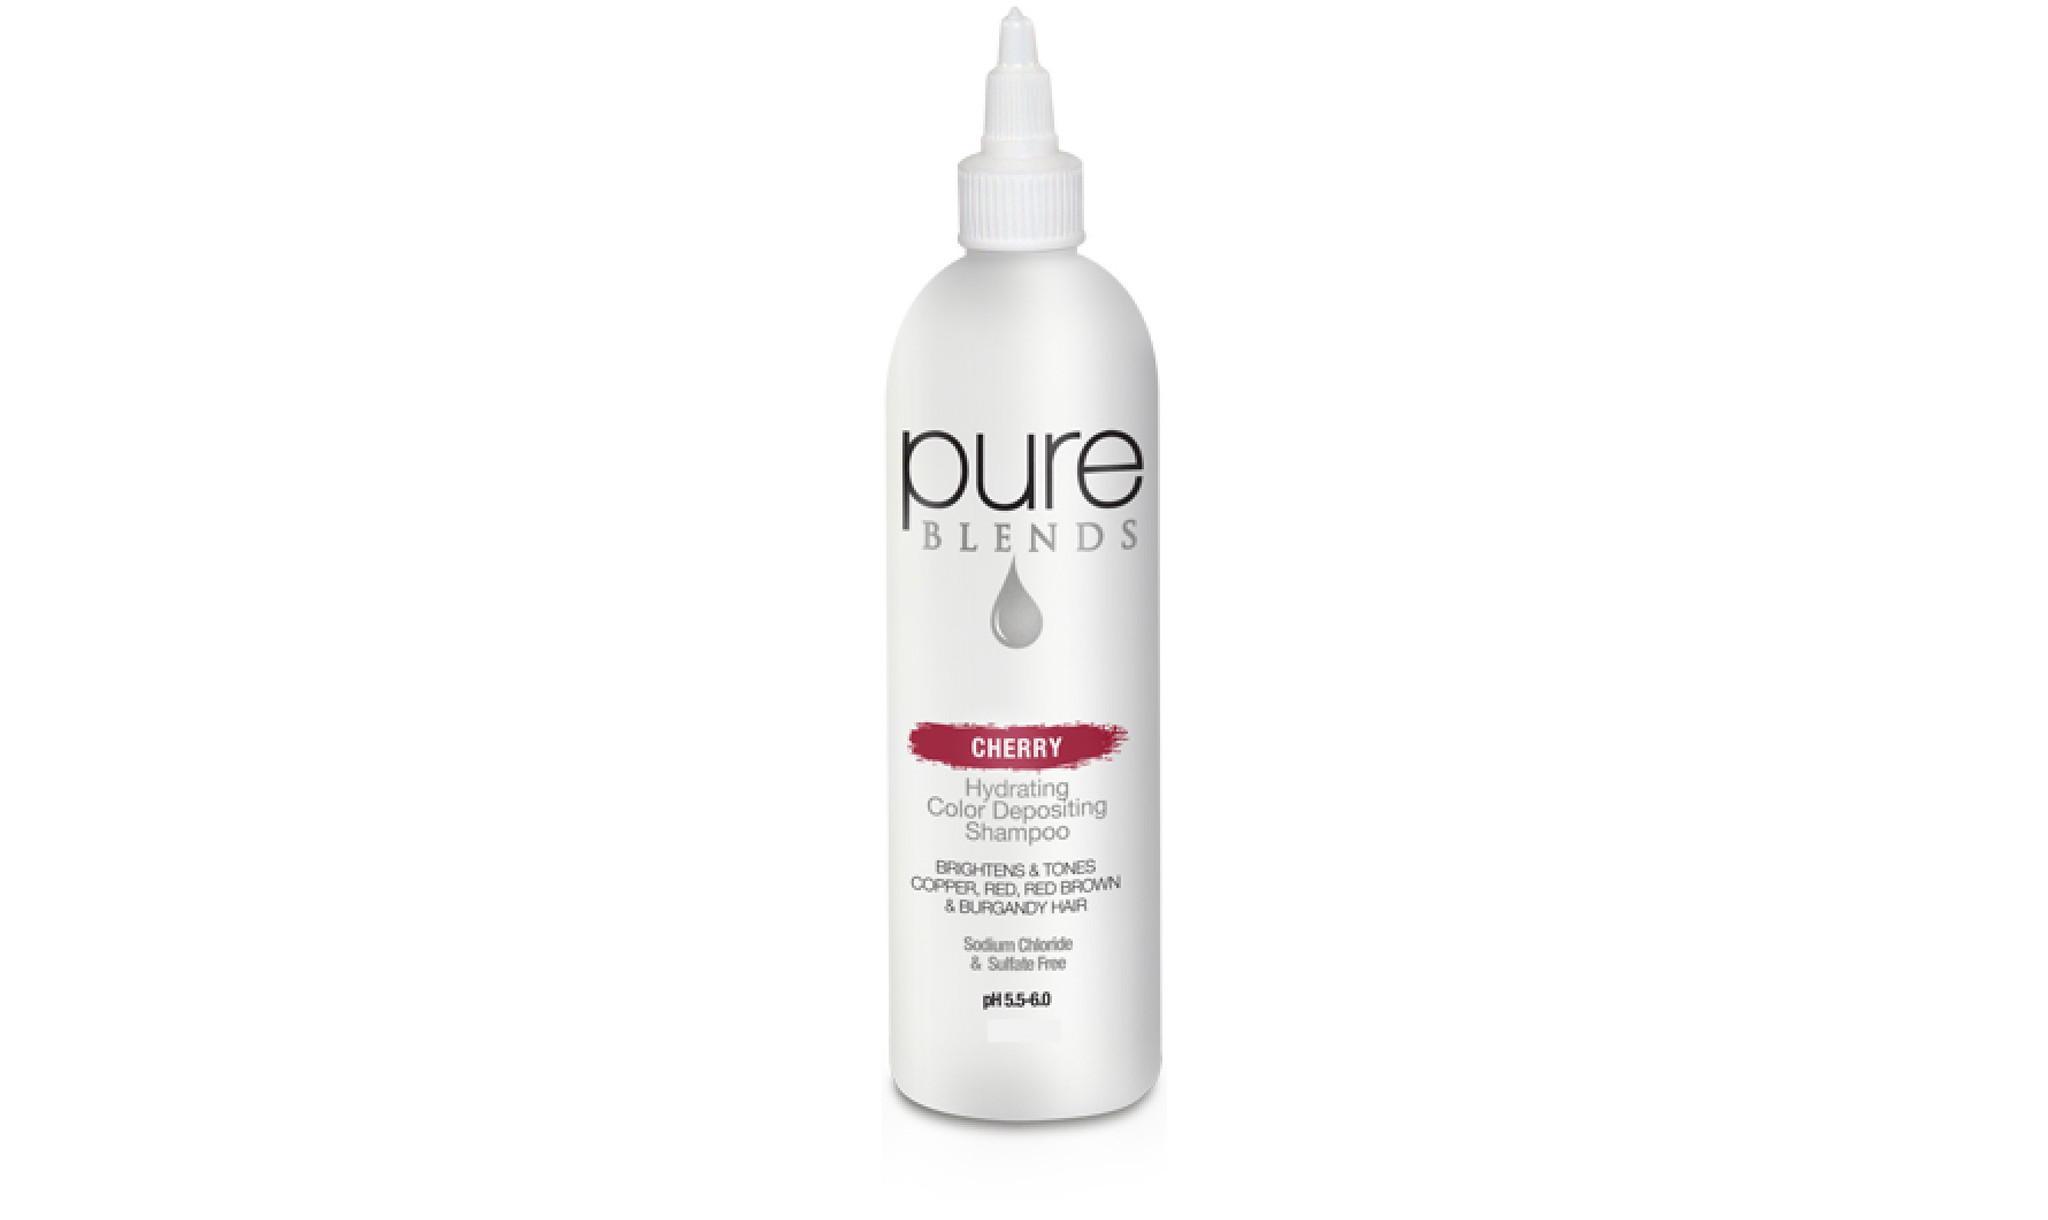 Pure Blends Colour Color Depositing Shampoo  red 120ml by Shop Salon Support - official distributor of Pure Blends Professional Hair Products, Colour Enhancing Shampoo, Colour Depositing Conditioner & Color Hair Shampoo Australia. Salon Support are Hair & Barber Barbershop Trade Wholesale Hairdressing Supplies Melbourne Australia